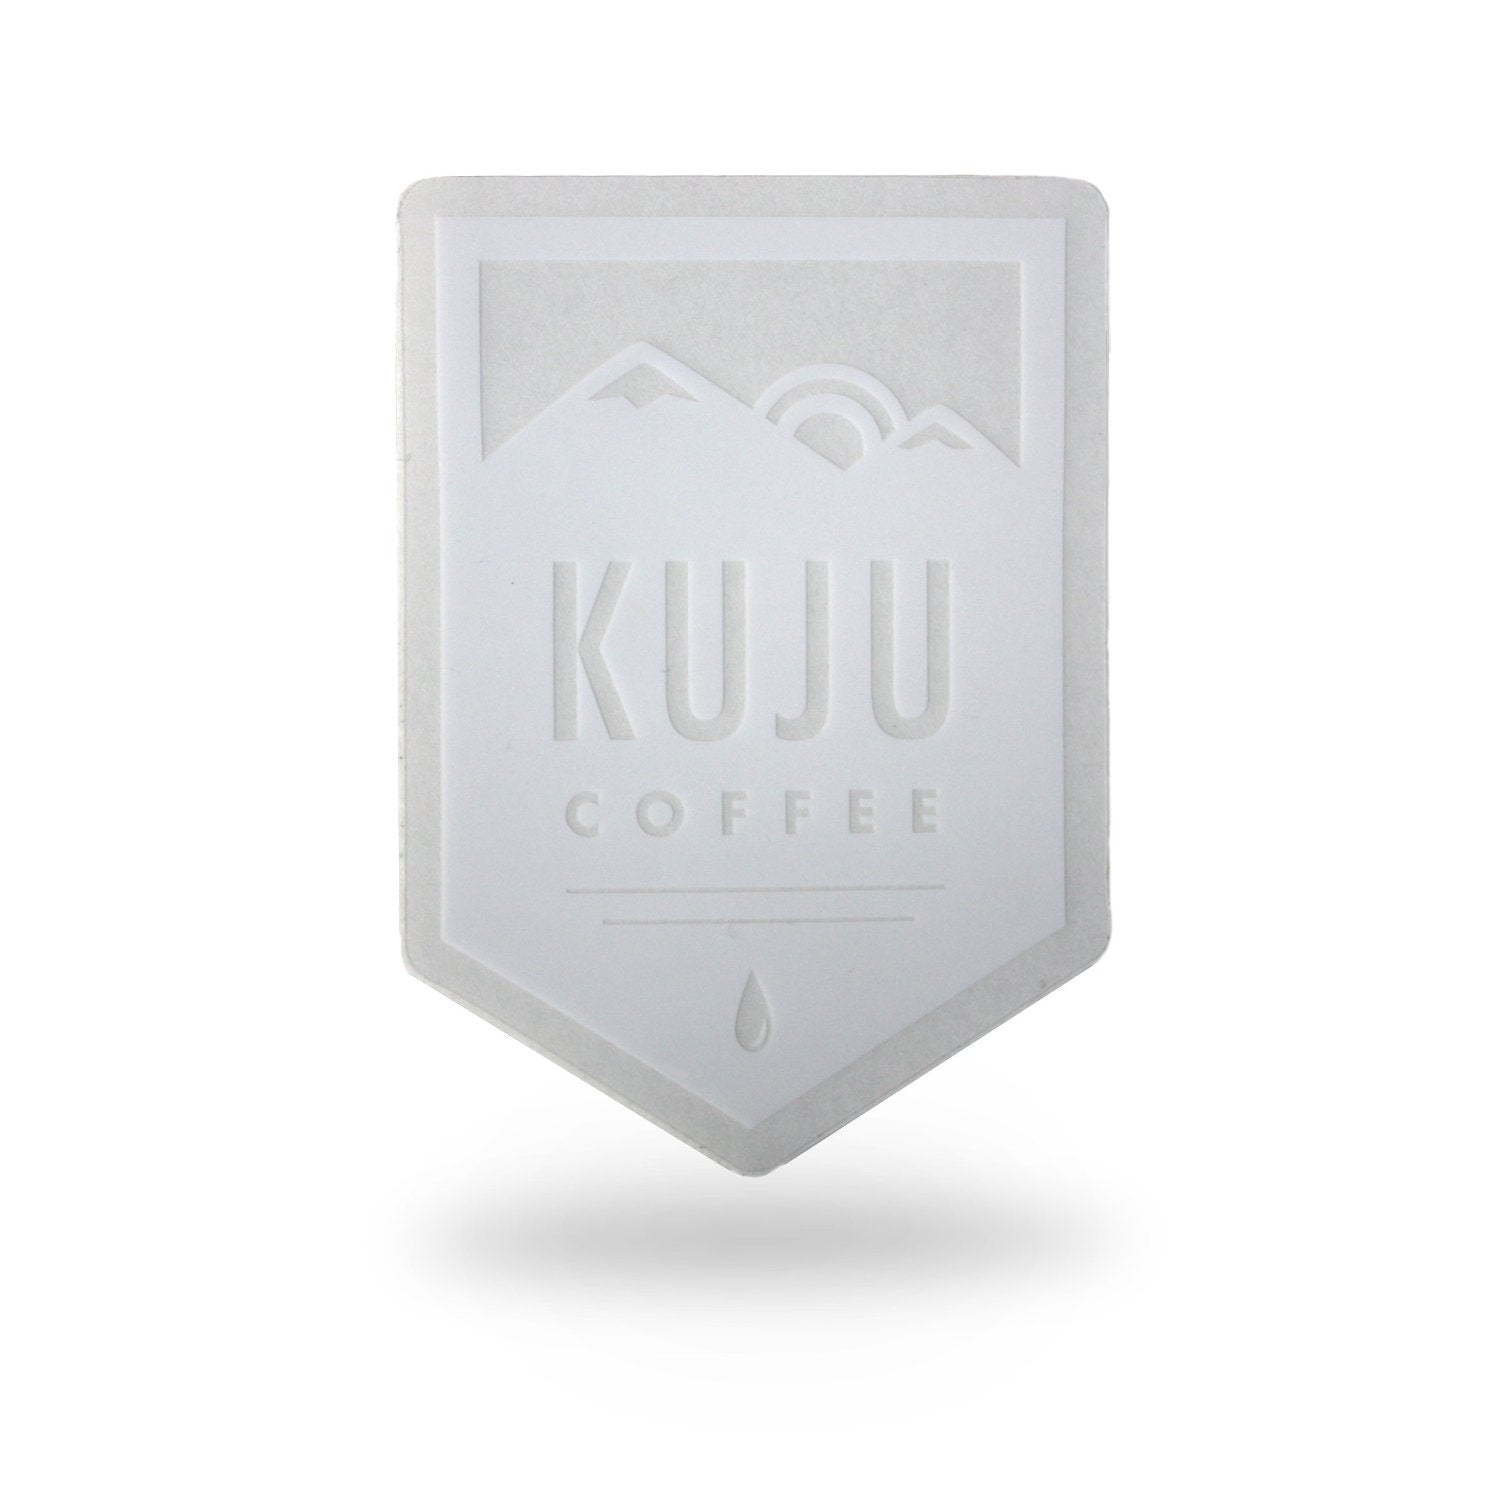 Kuju Logo Decal - Kuju Coffee